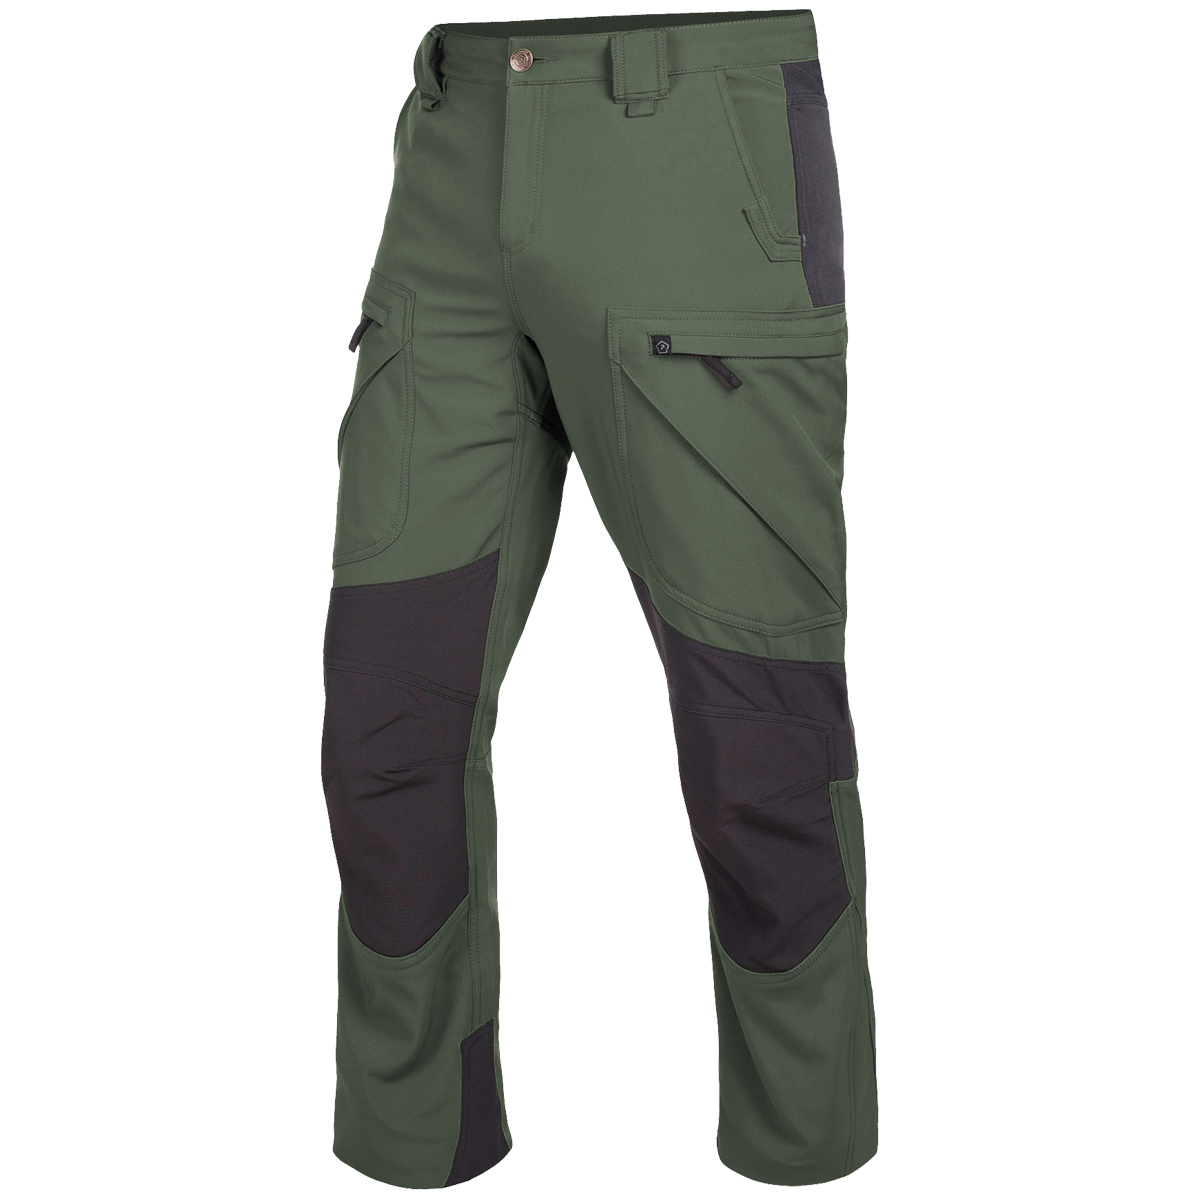 k05015-04-pentagon-hydra-soft-shell-pants-camo-green_11